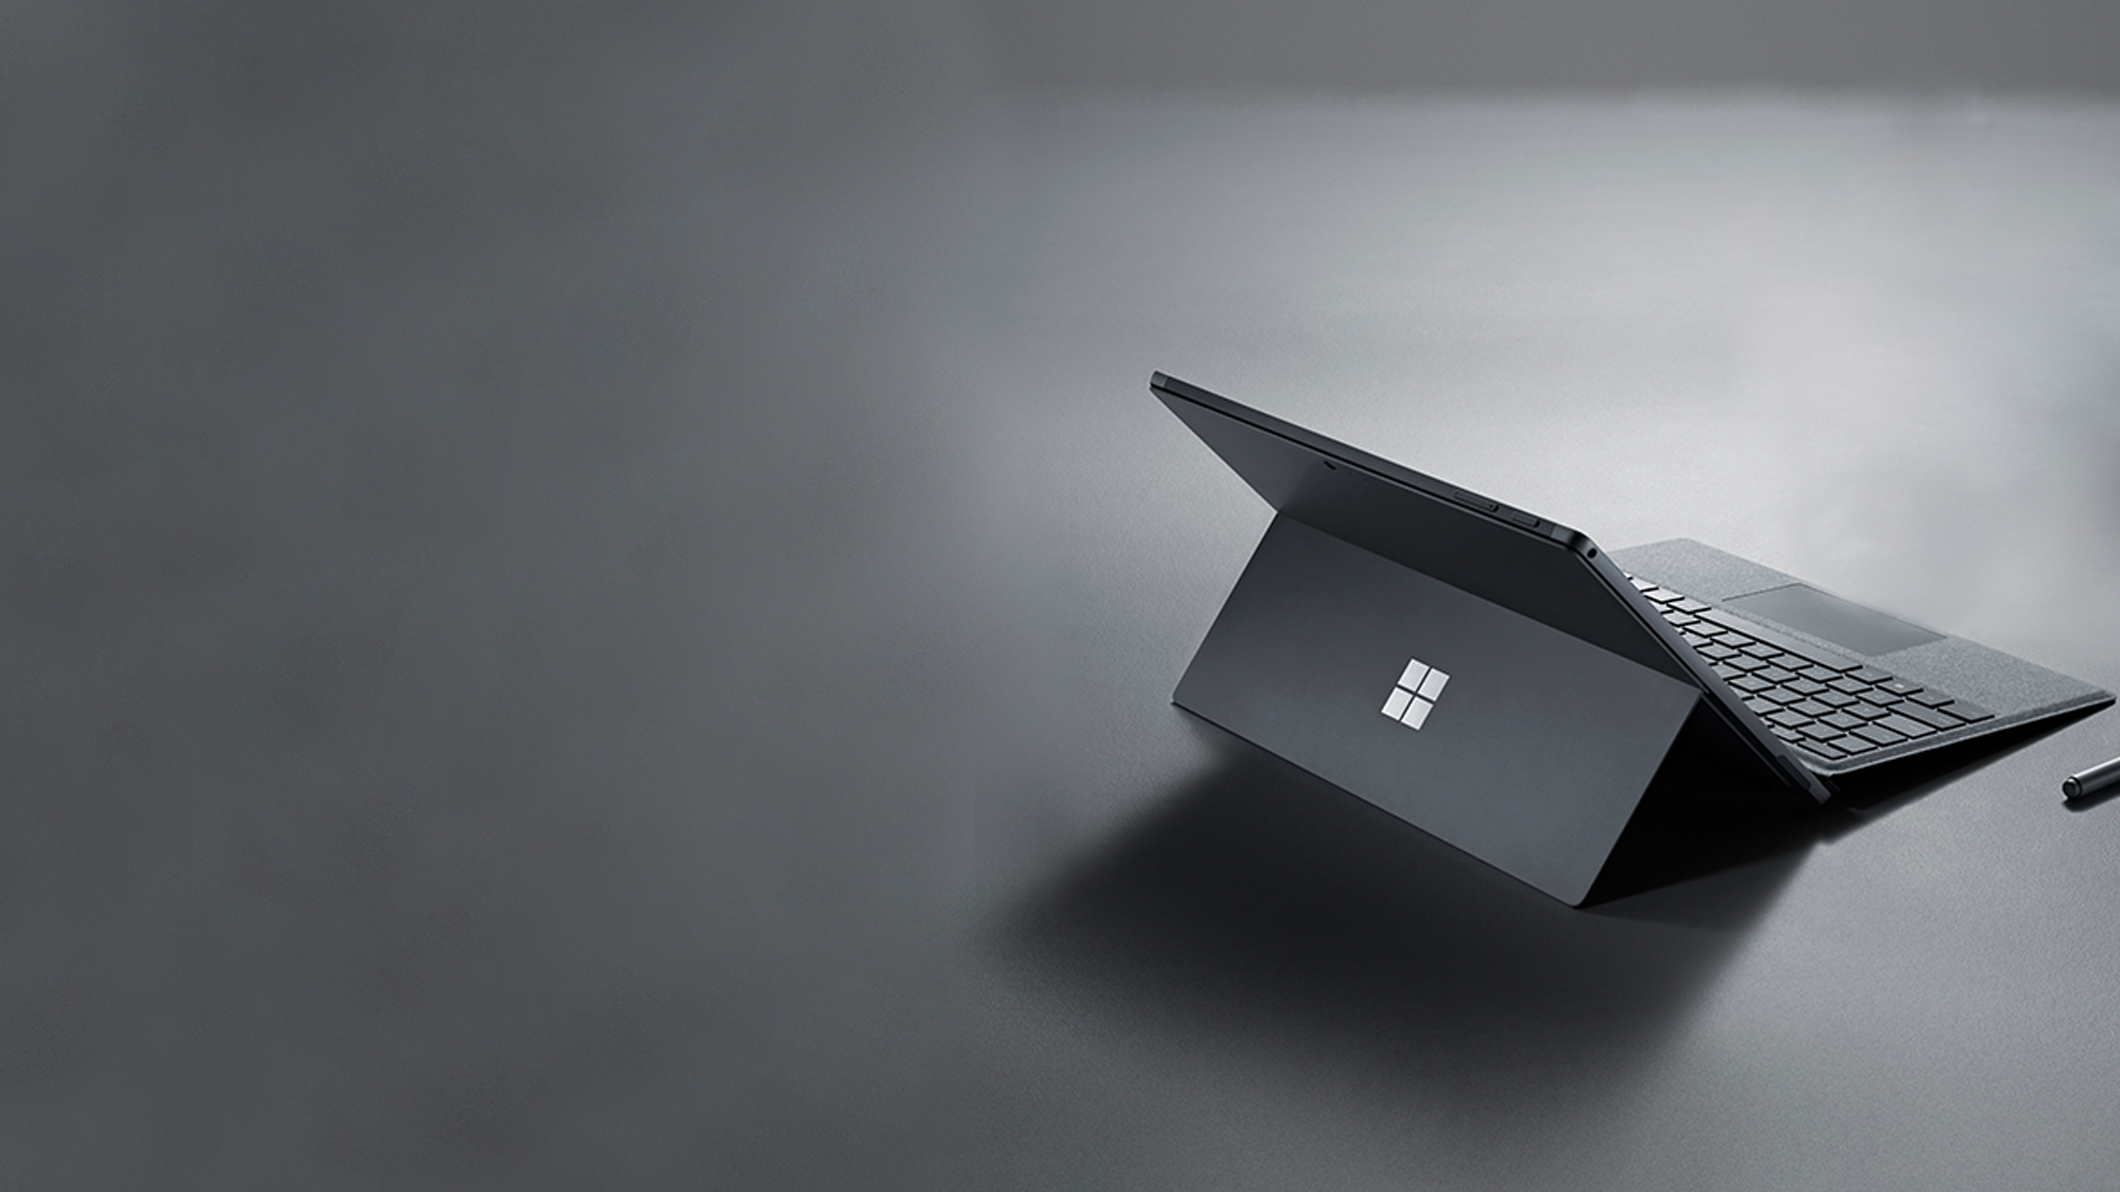 Microsoft Surface device